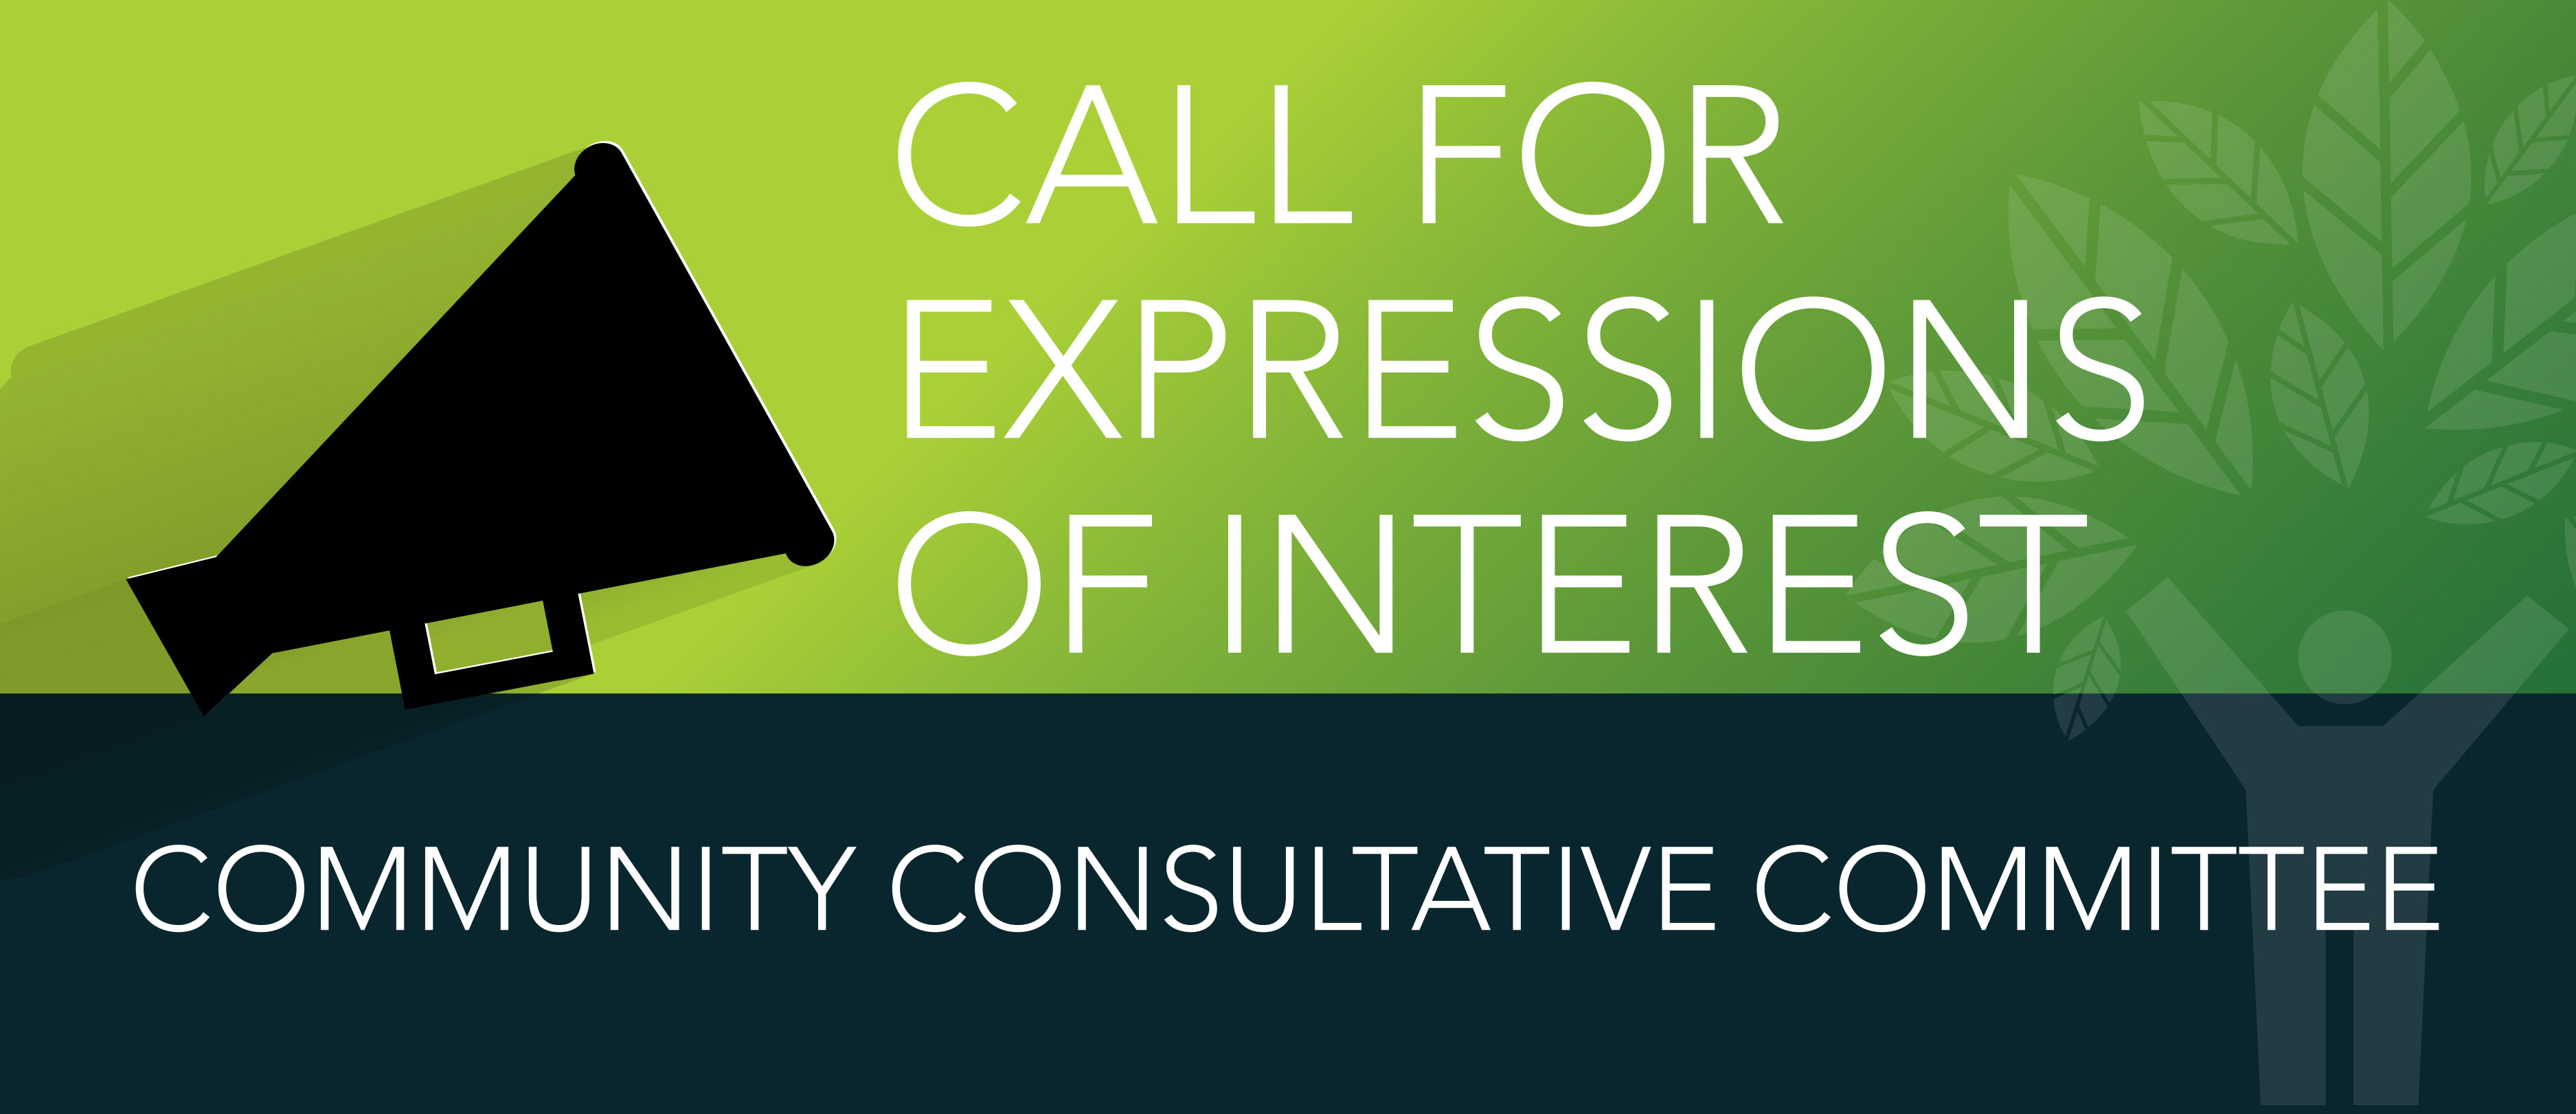 Call for Expressions of Interest for Community Consultative Committee